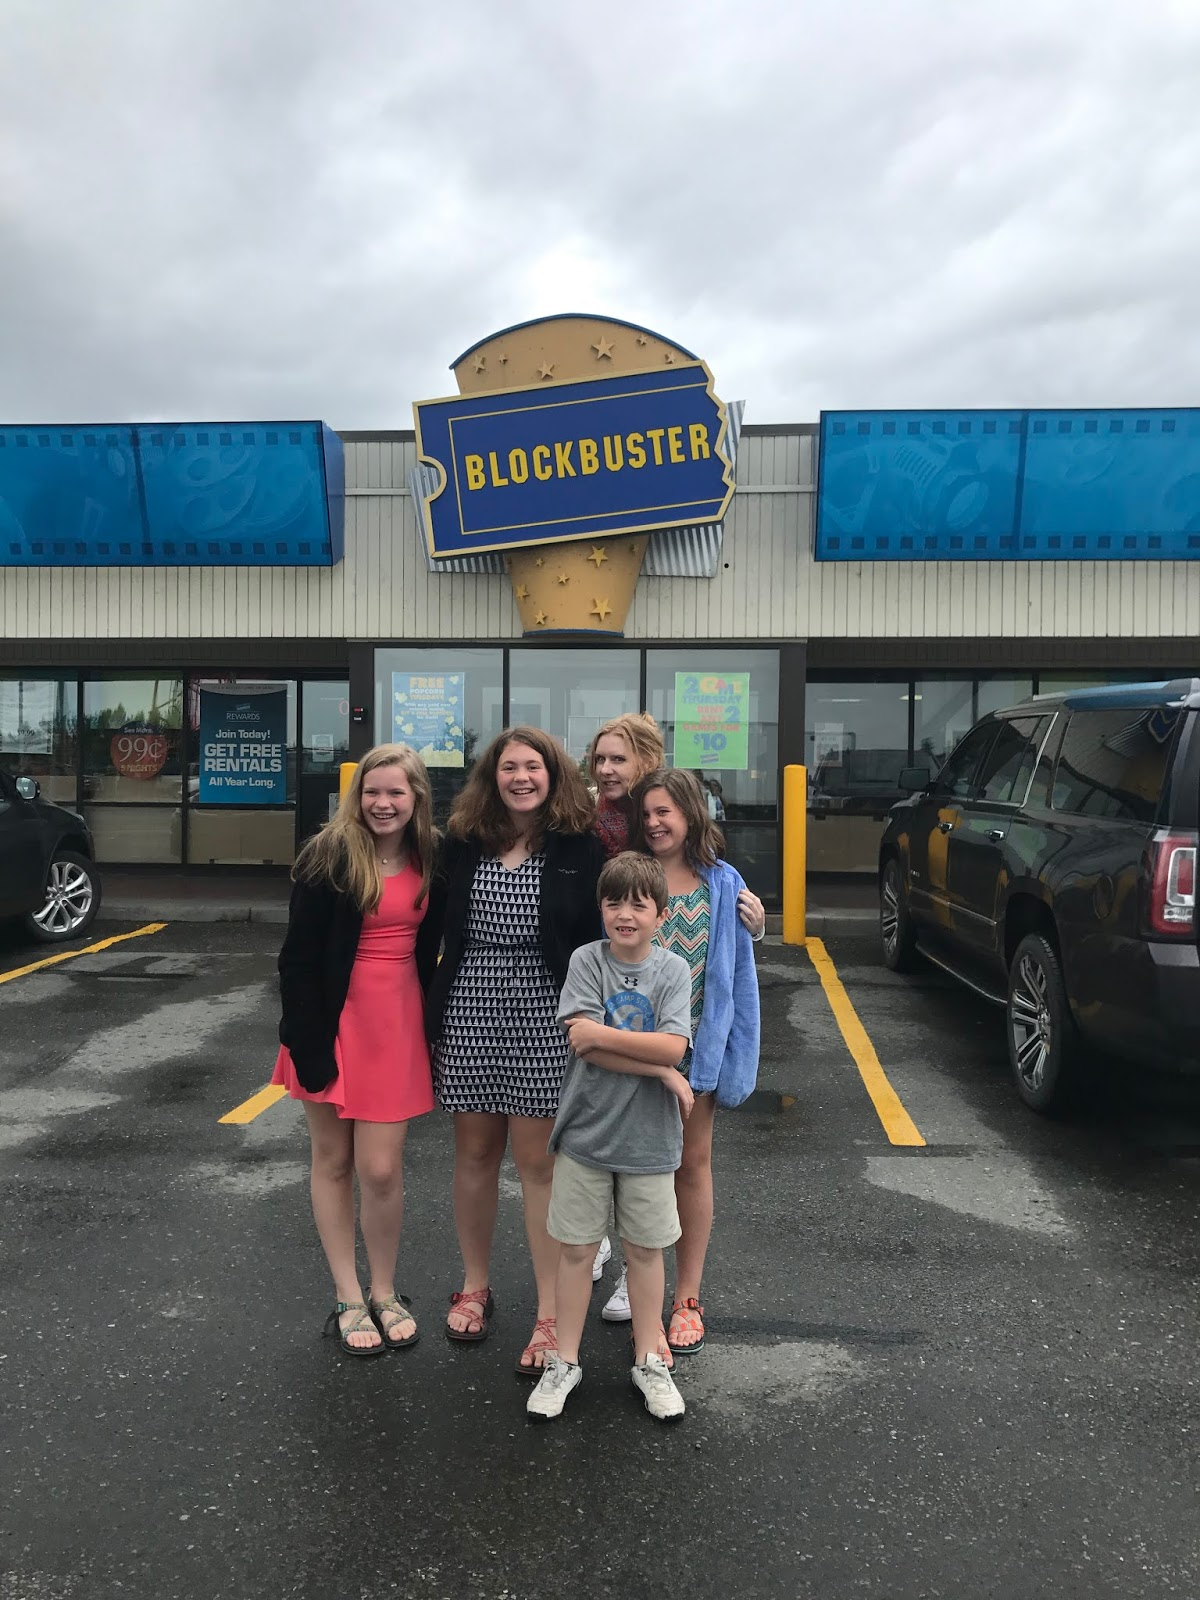 cbs sunday morning did a piece about this store so we wanted to take the kids to experience it john oliver of last week tonight also did a feature on it